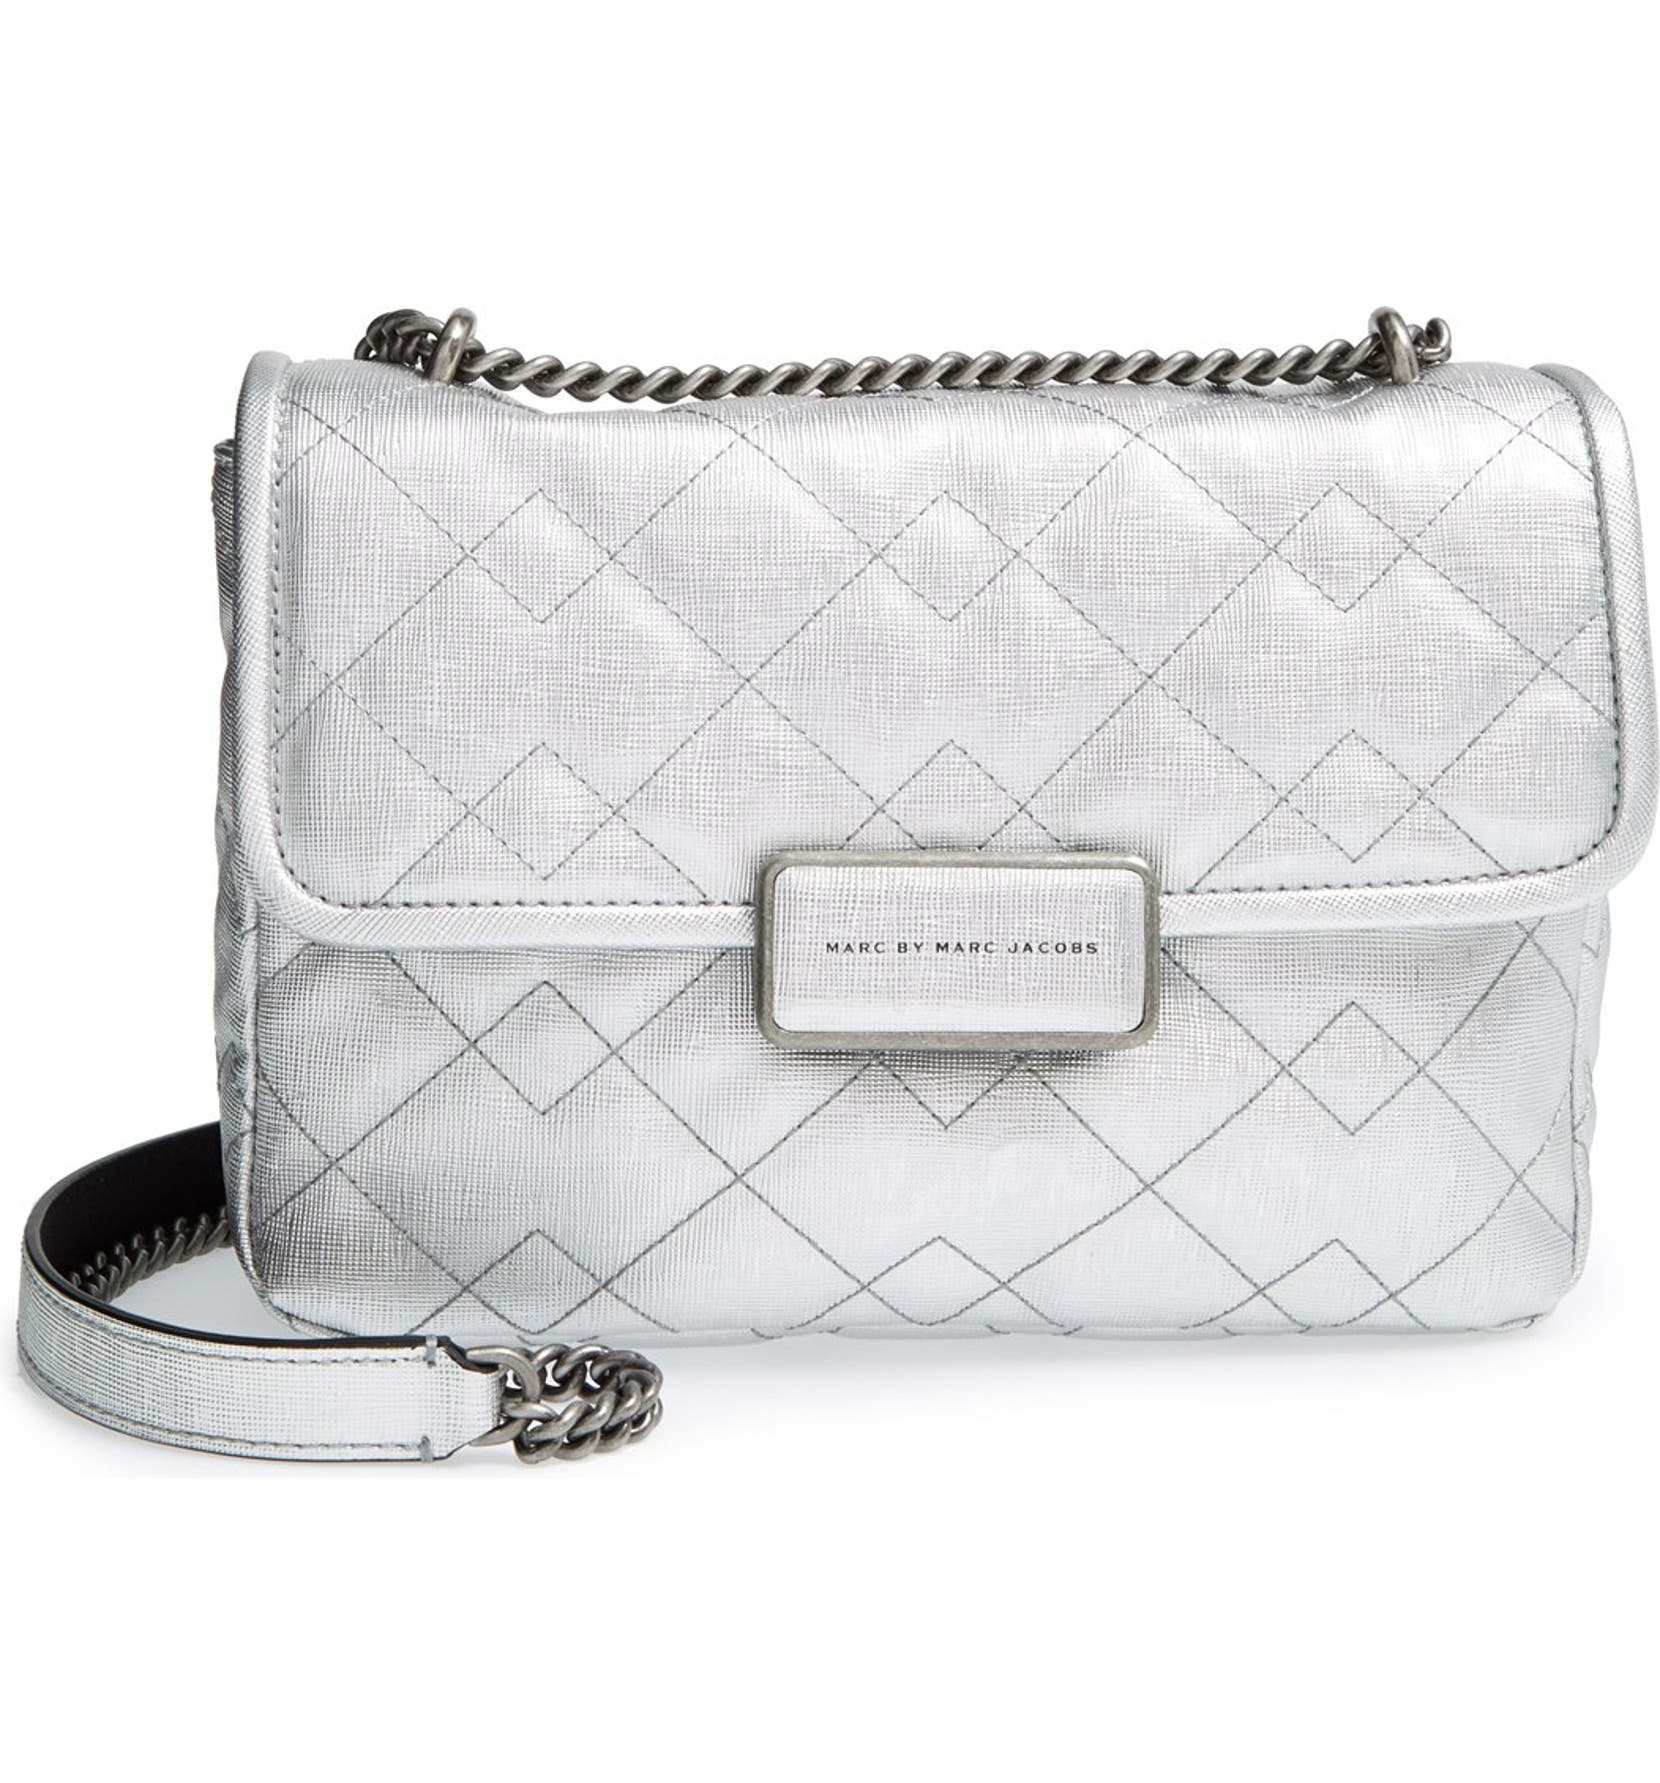 0d4a70b927a5 MARC BY MARC JACOBS  Rebel 24  Crossbody Bag